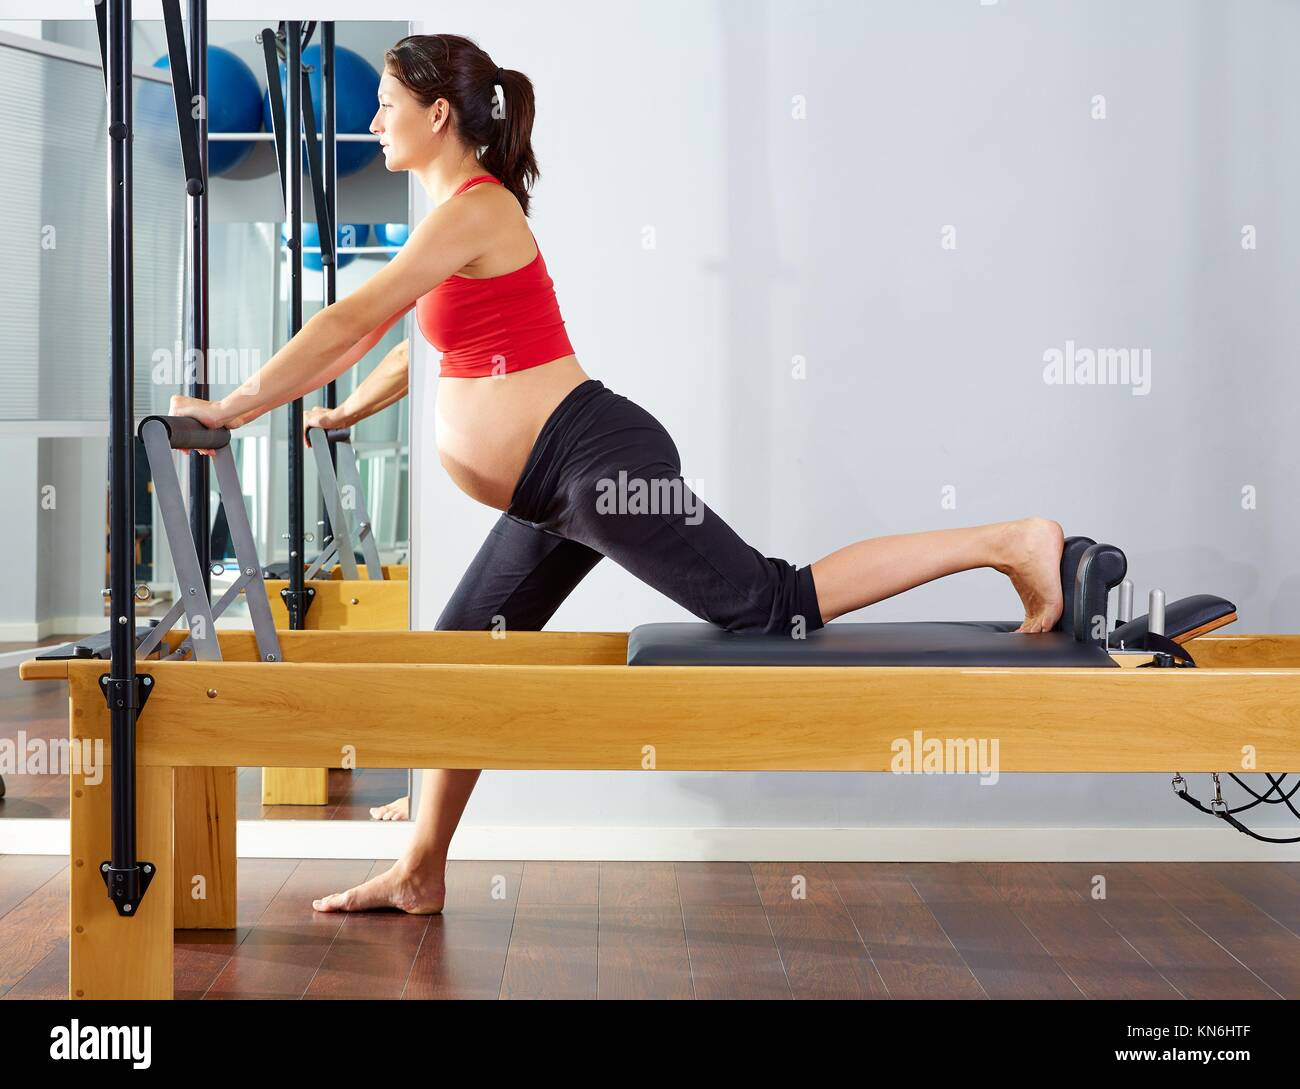 pregnant woman pilates reformer cadillac exercise workout at gym. - Stock Image